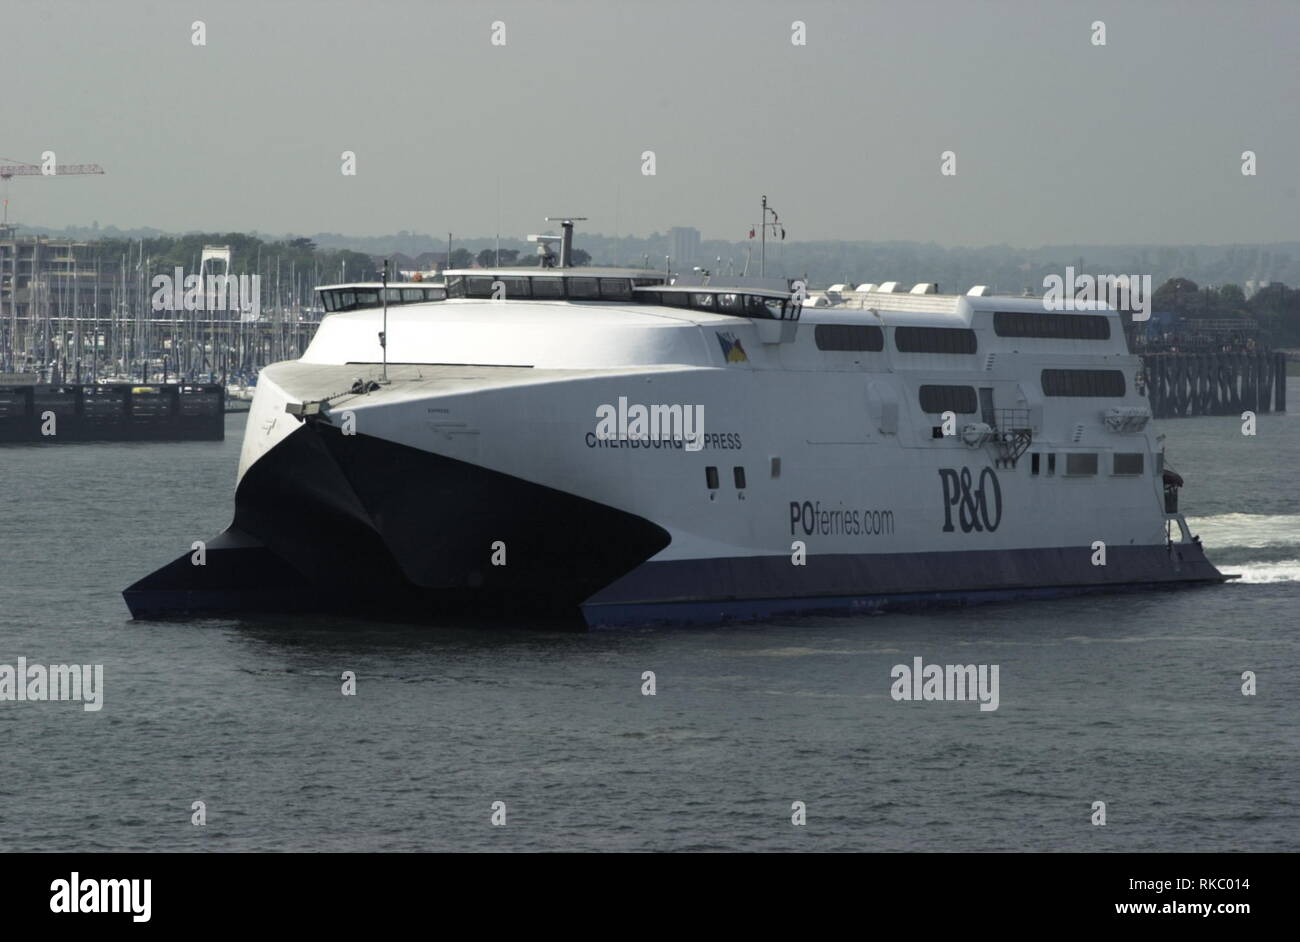 AJAXNETPHOTO. MAY, 2004. PORTSMOUTH, ENGLAND. - OUTWARD BOUND - P&O FERRIES HIGH SPEED CATAMARAN CHERBOURG EXPRESS LEAVING HARBOUR.  PHOTO:JONATHAN EASTLAND/AJAX REF:D41705_245 - Stock Image